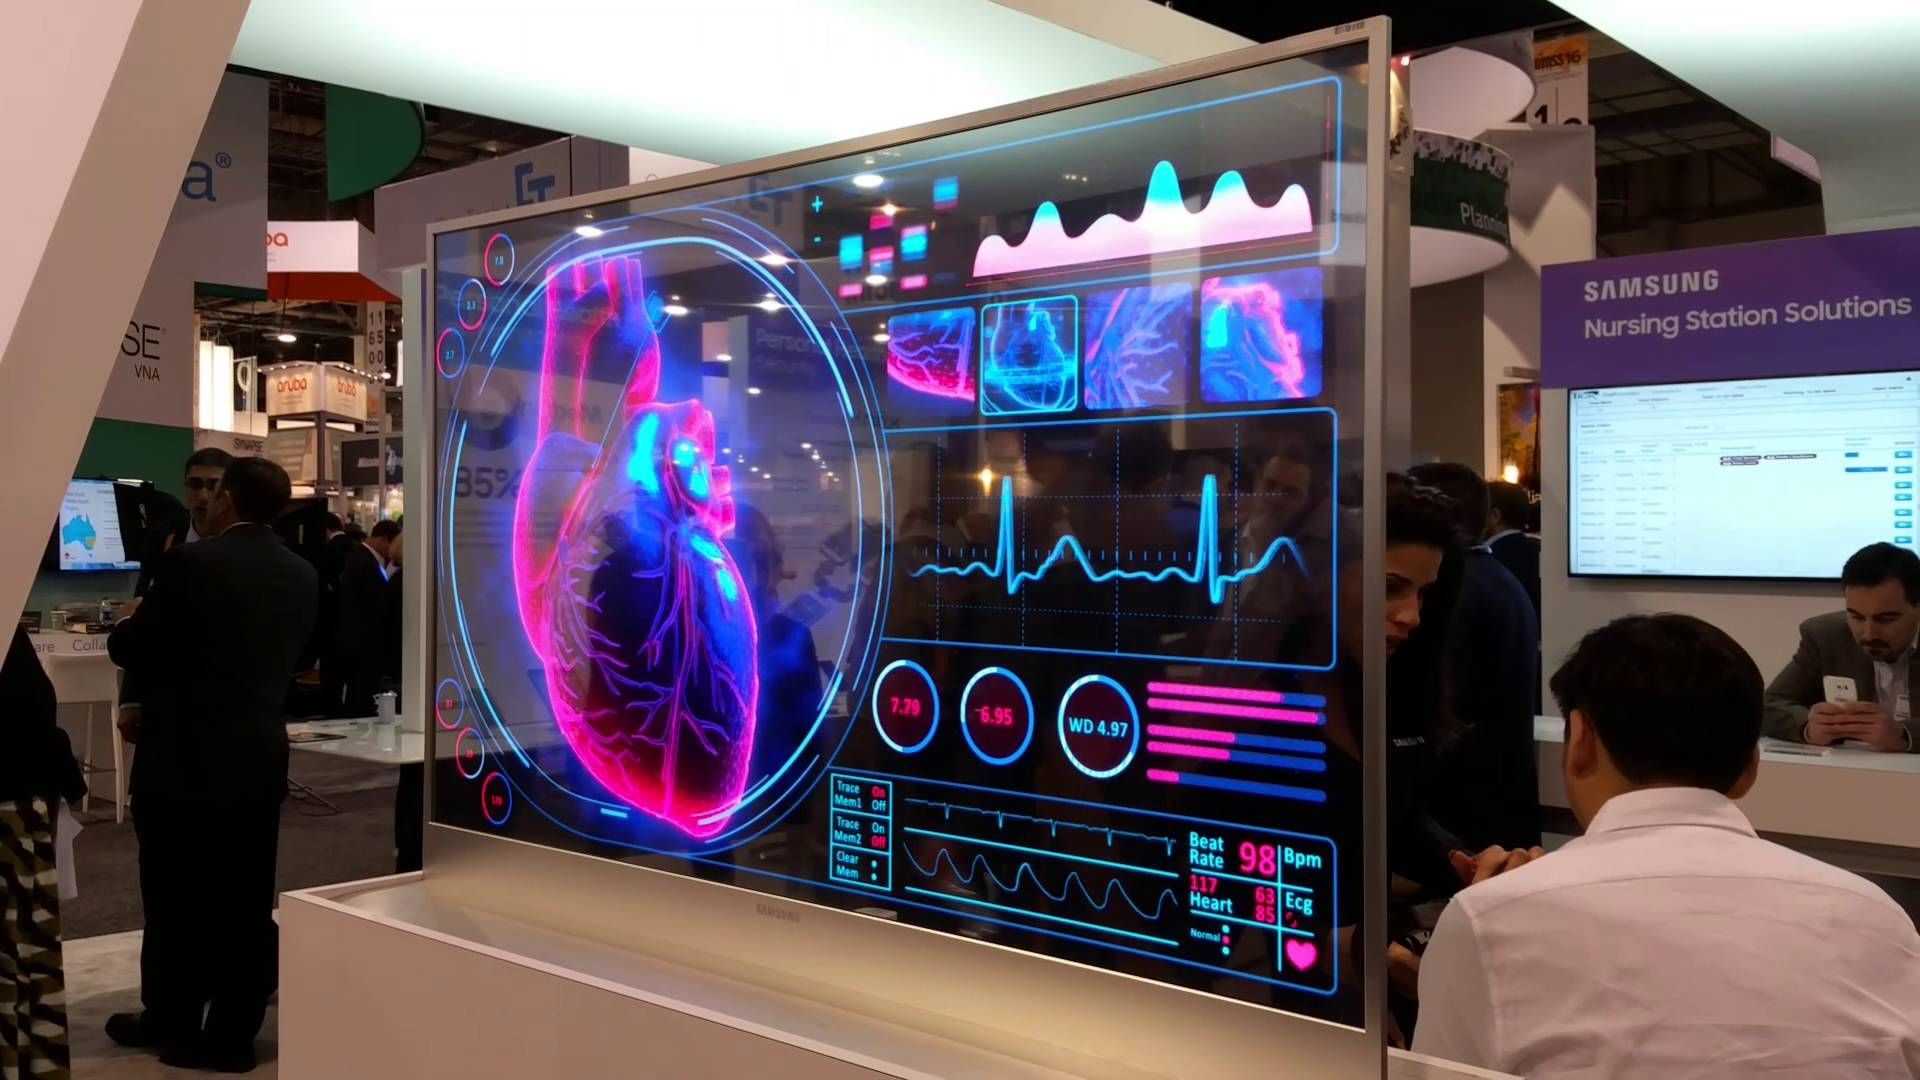 Image Result For Samsung Transpa Tv Screen Display Technologies Future Office Dashboard